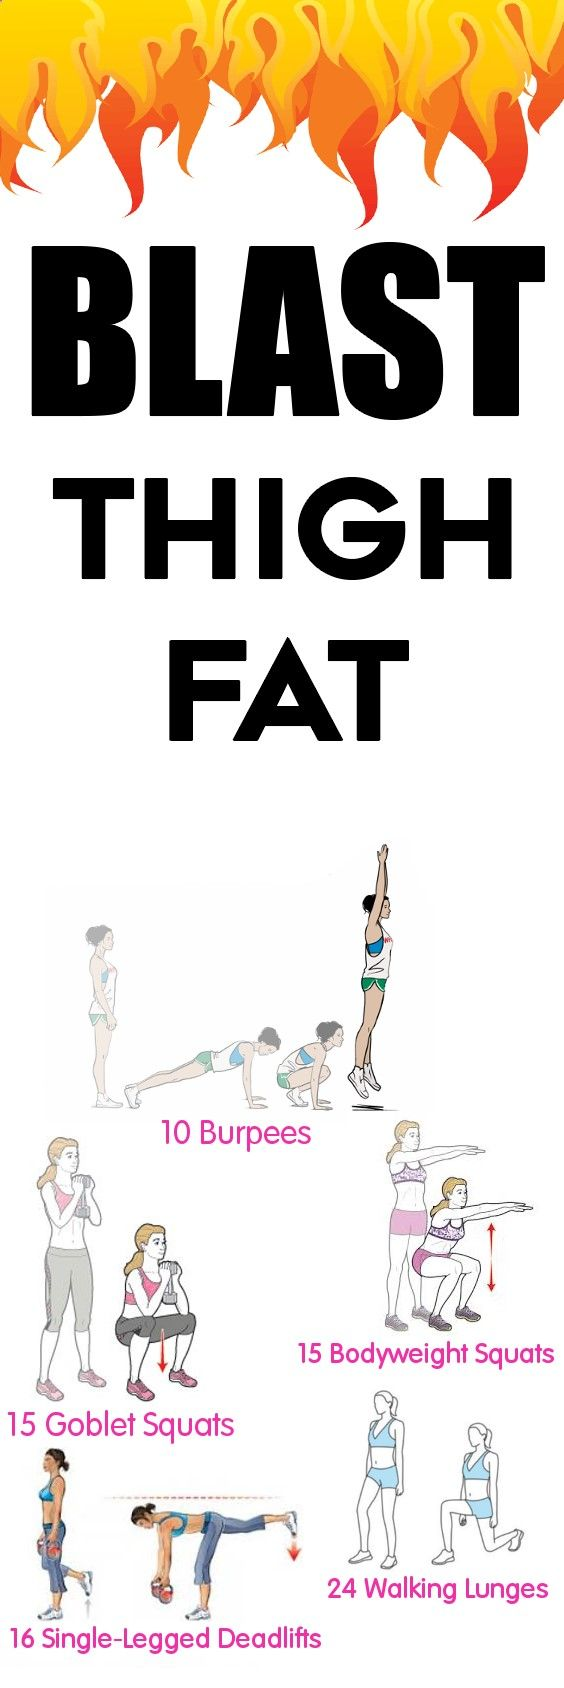 How To Lose Thigh Fat - Here are some thigh fat workouts that you can do to lose thigh fat fast. how to loose weight